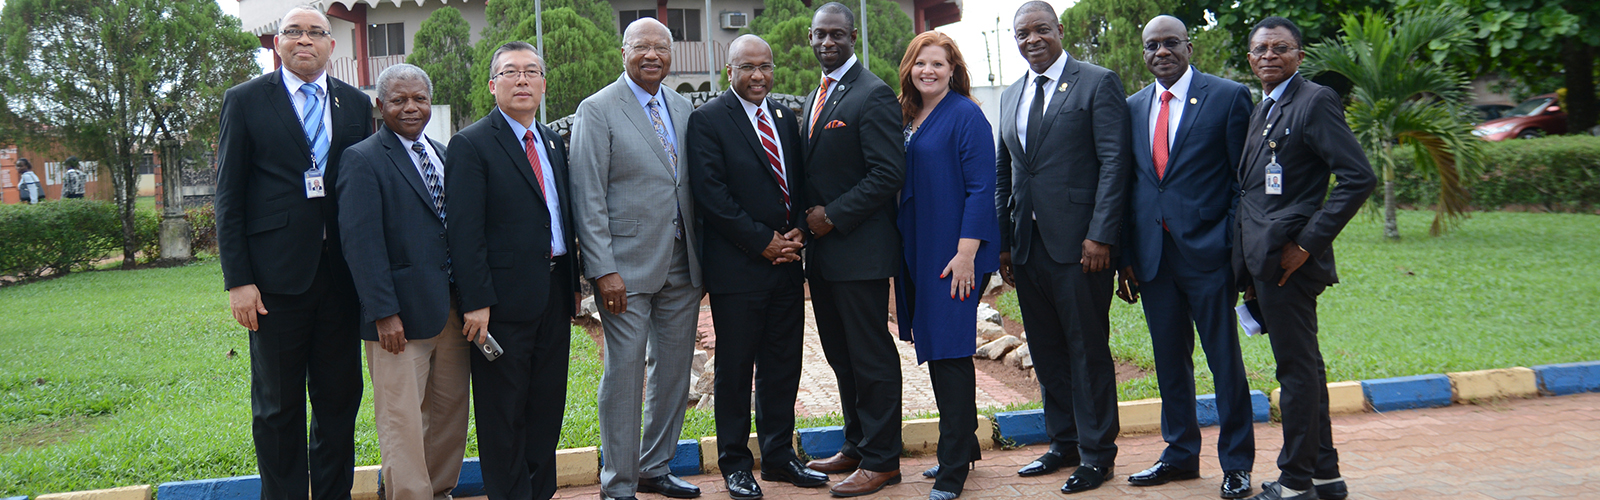 BENSON IDAHOSA UNIVERSITY TO PARTNER WITH DELAWARE STATE UNIVERSITY